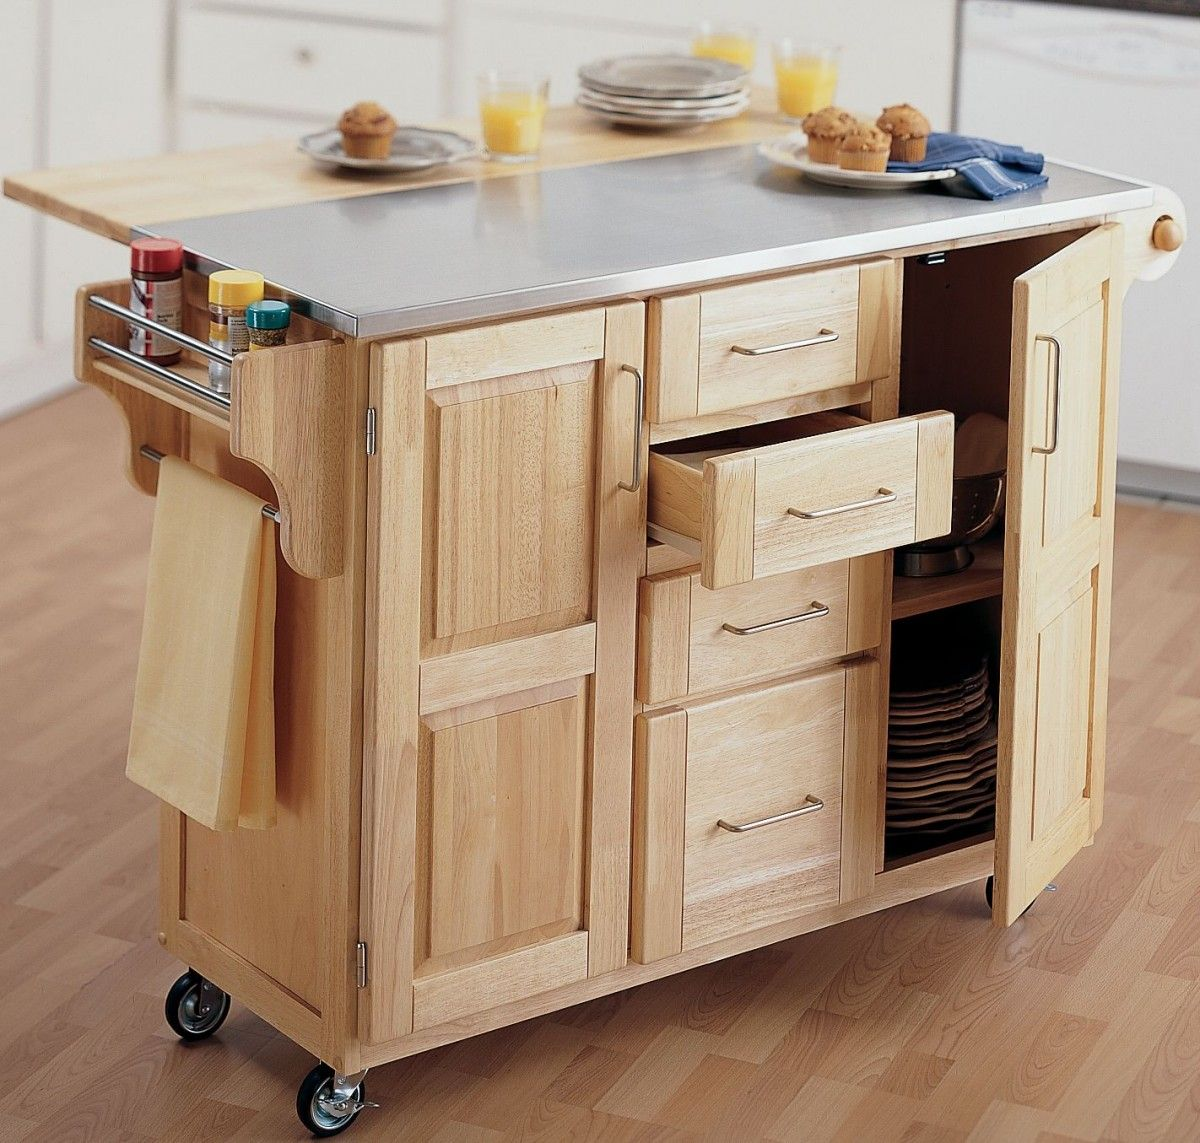 Fascinating Wooden Kitchen Island Utility Cart With Tiny